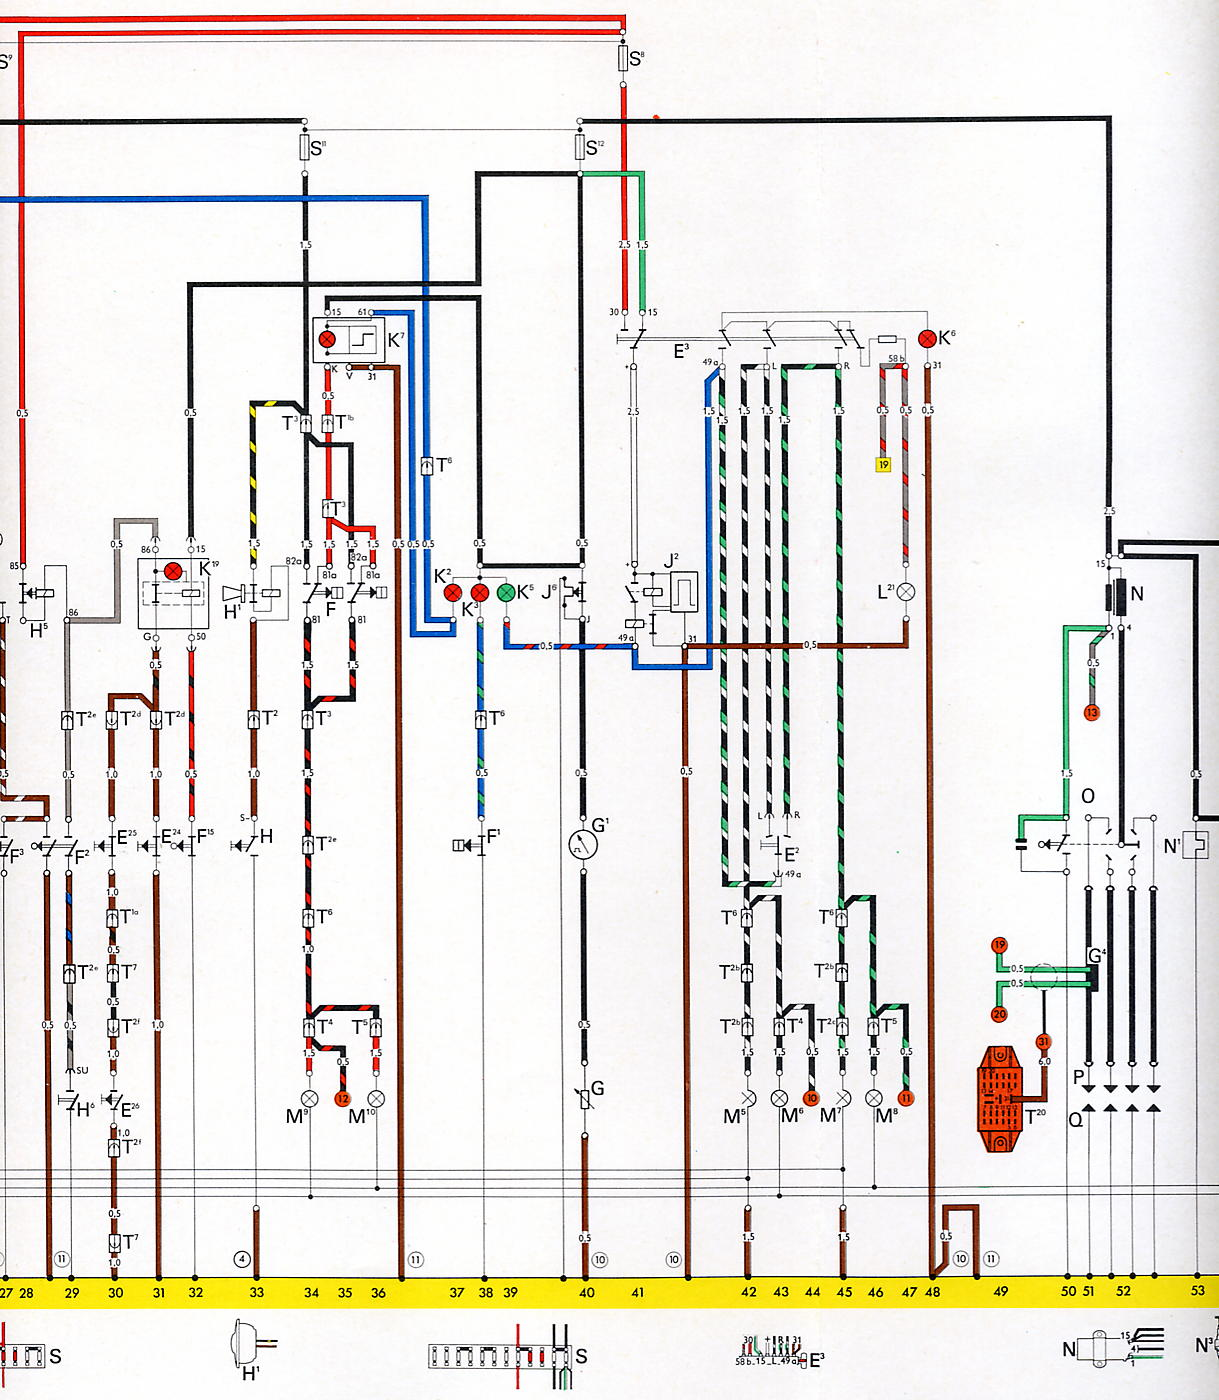 1964 Vw Bug Wiring Diagram - 8n Ford Tractor Starter Solenoid Wiring Diagram  for Wiring Diagram SchematicsWiring Diagram Schematics